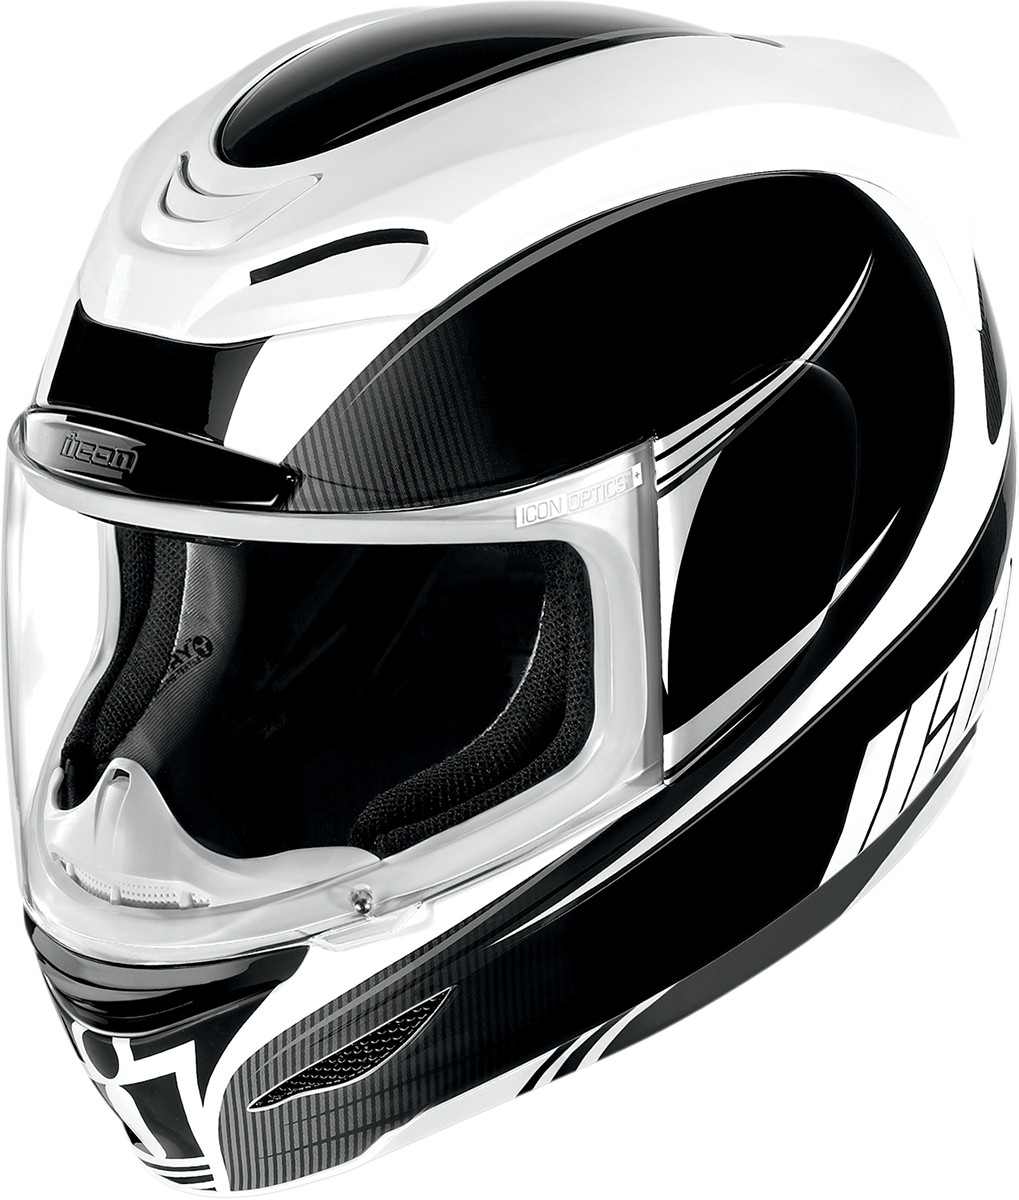 Motorcycle Safety Gear >> Icon Airmada Salient Full Face Motorcycle Helmet - Black